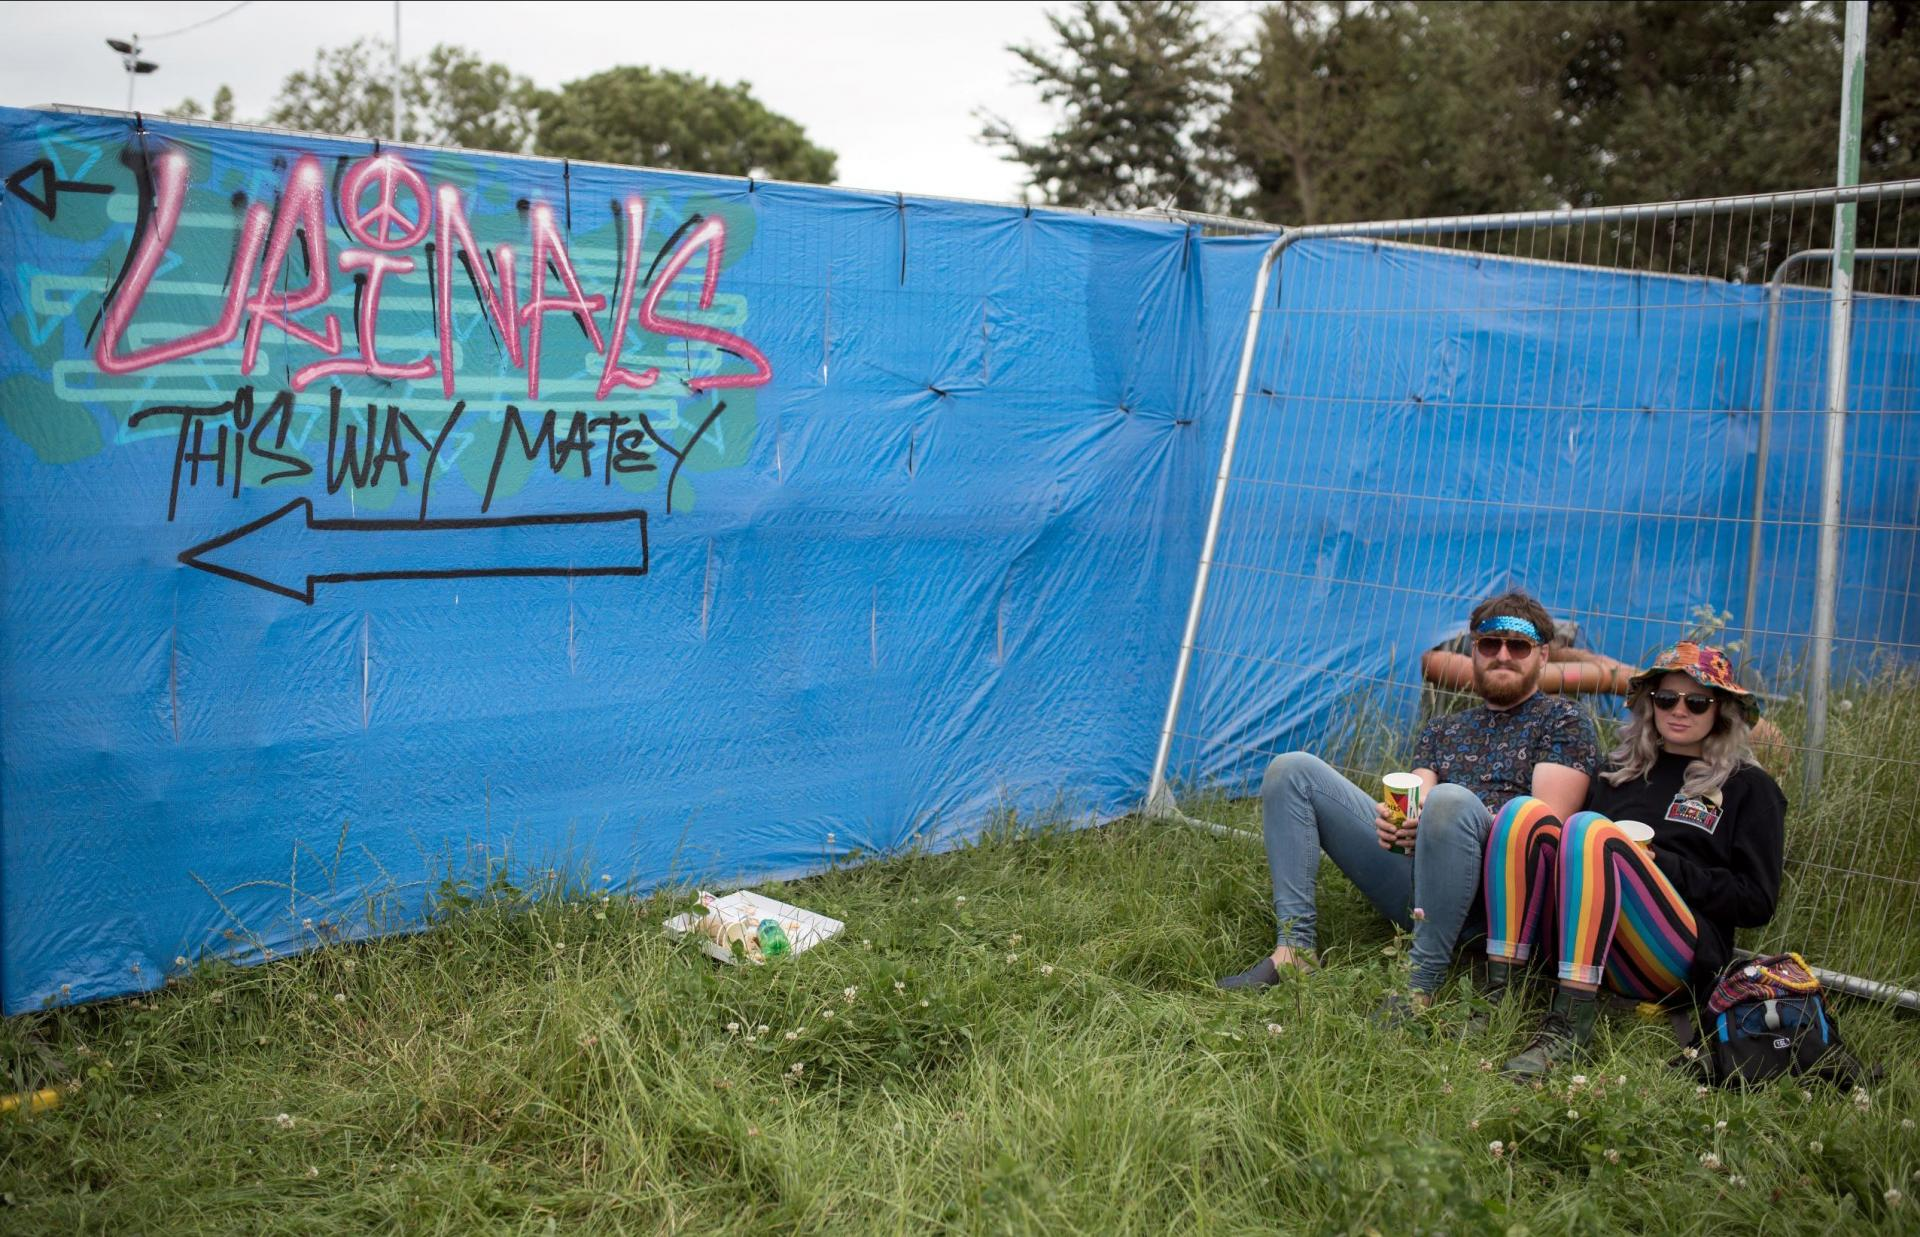 Experts are urging festival attendees to use Glastonbury's official toilets, instead of urinating all over the place.